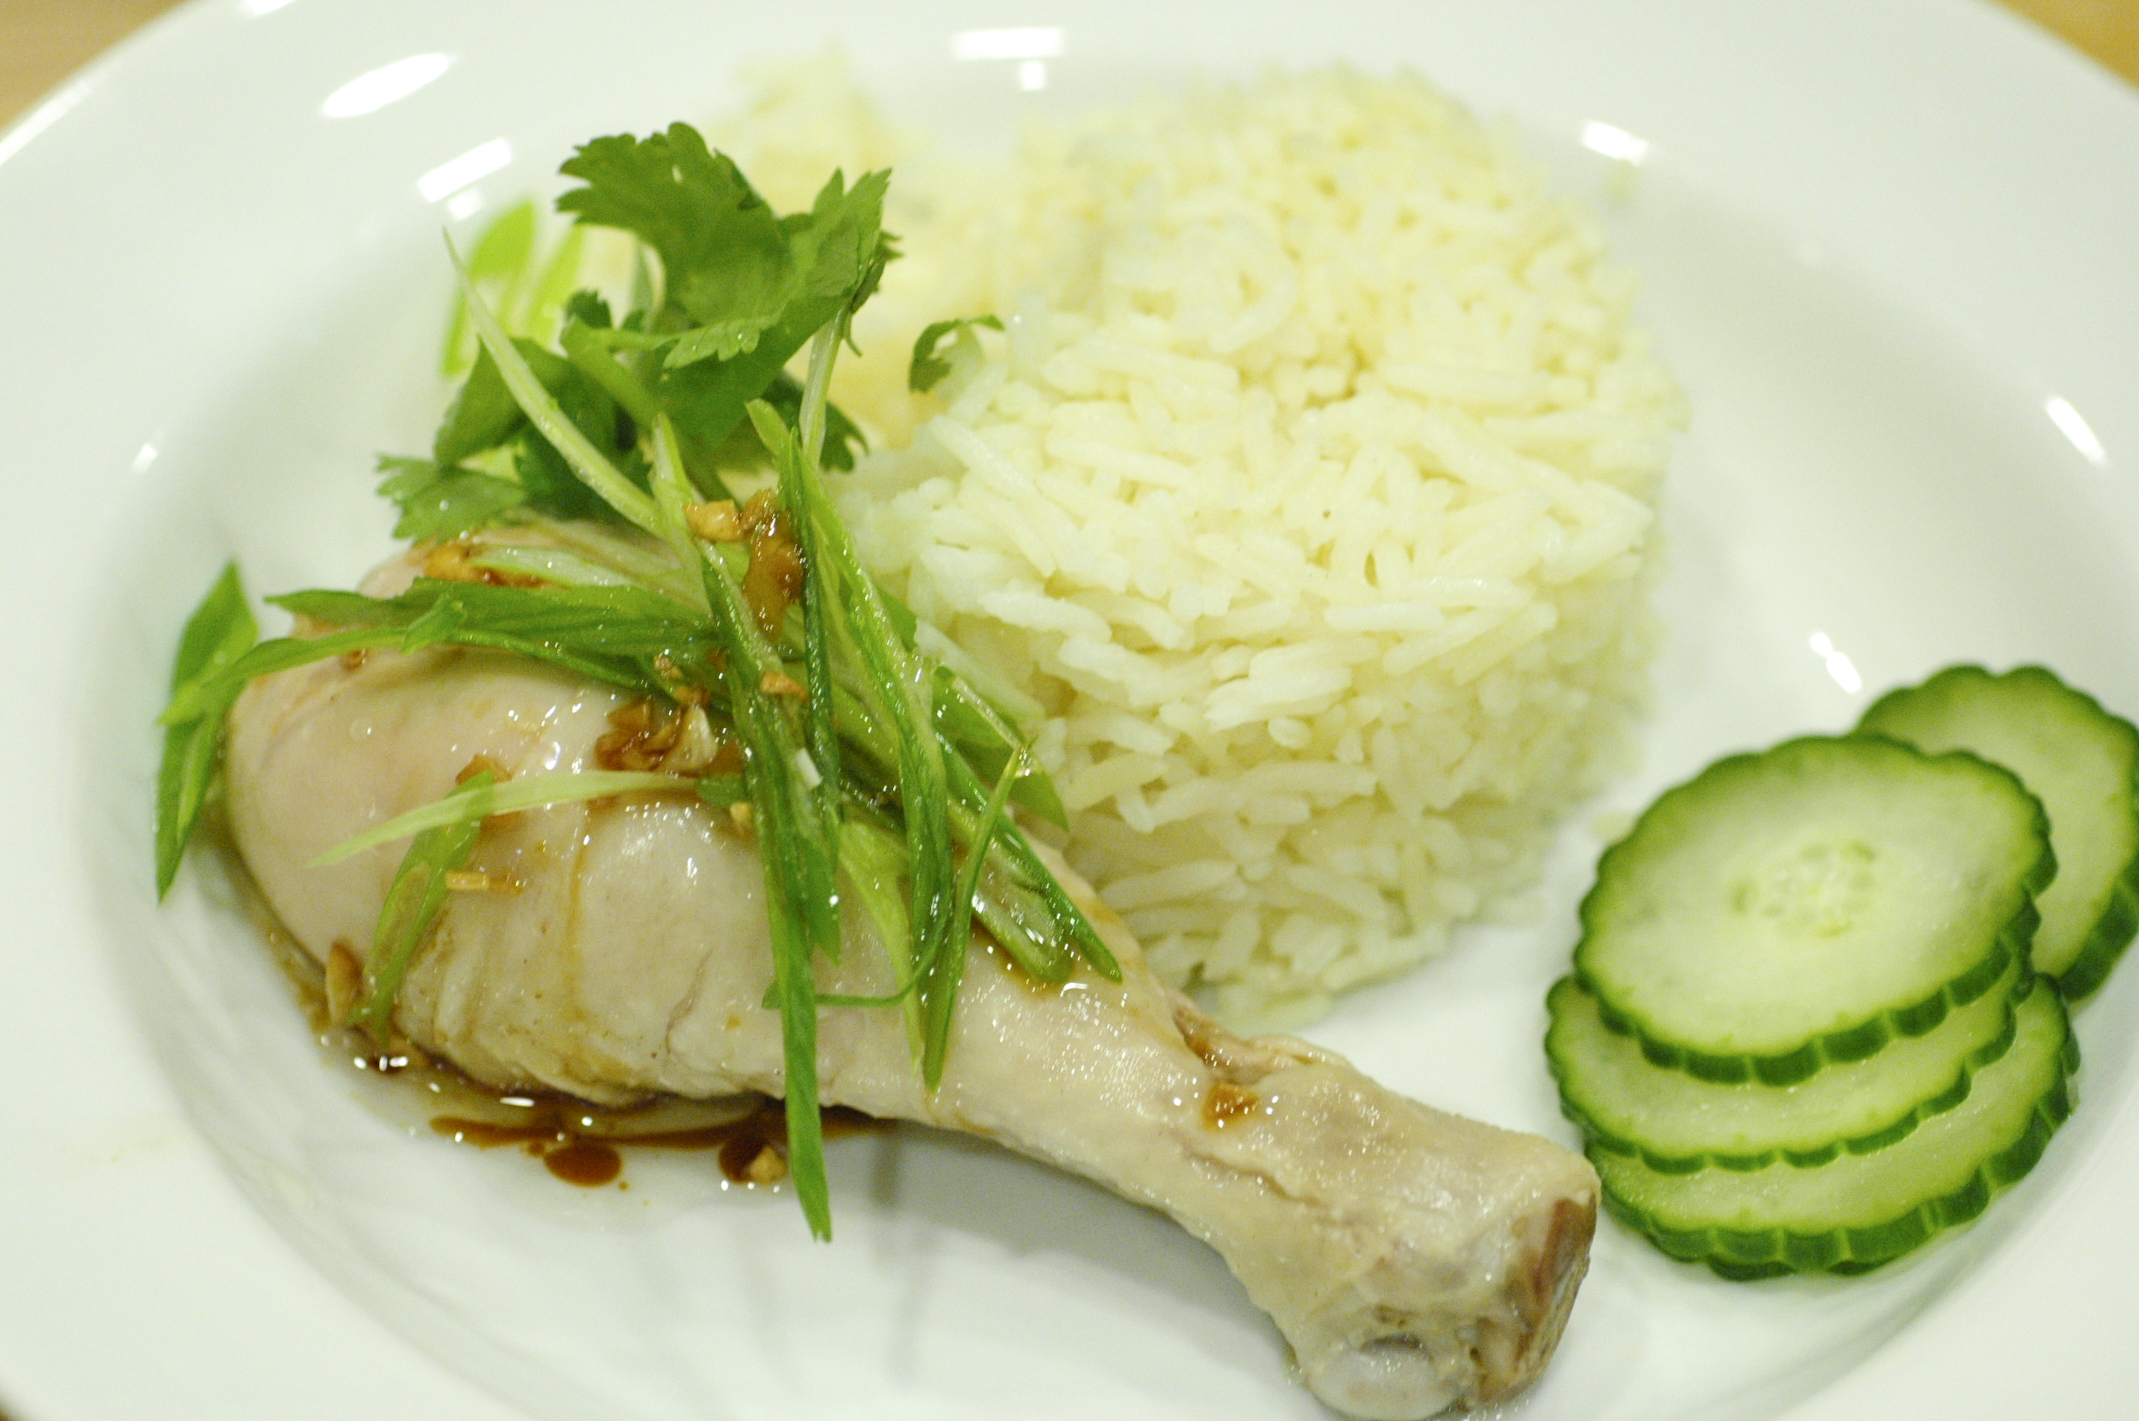 FLAVOR EXPLOSIONS » Blog Archive » Hainanese Chicken Rice